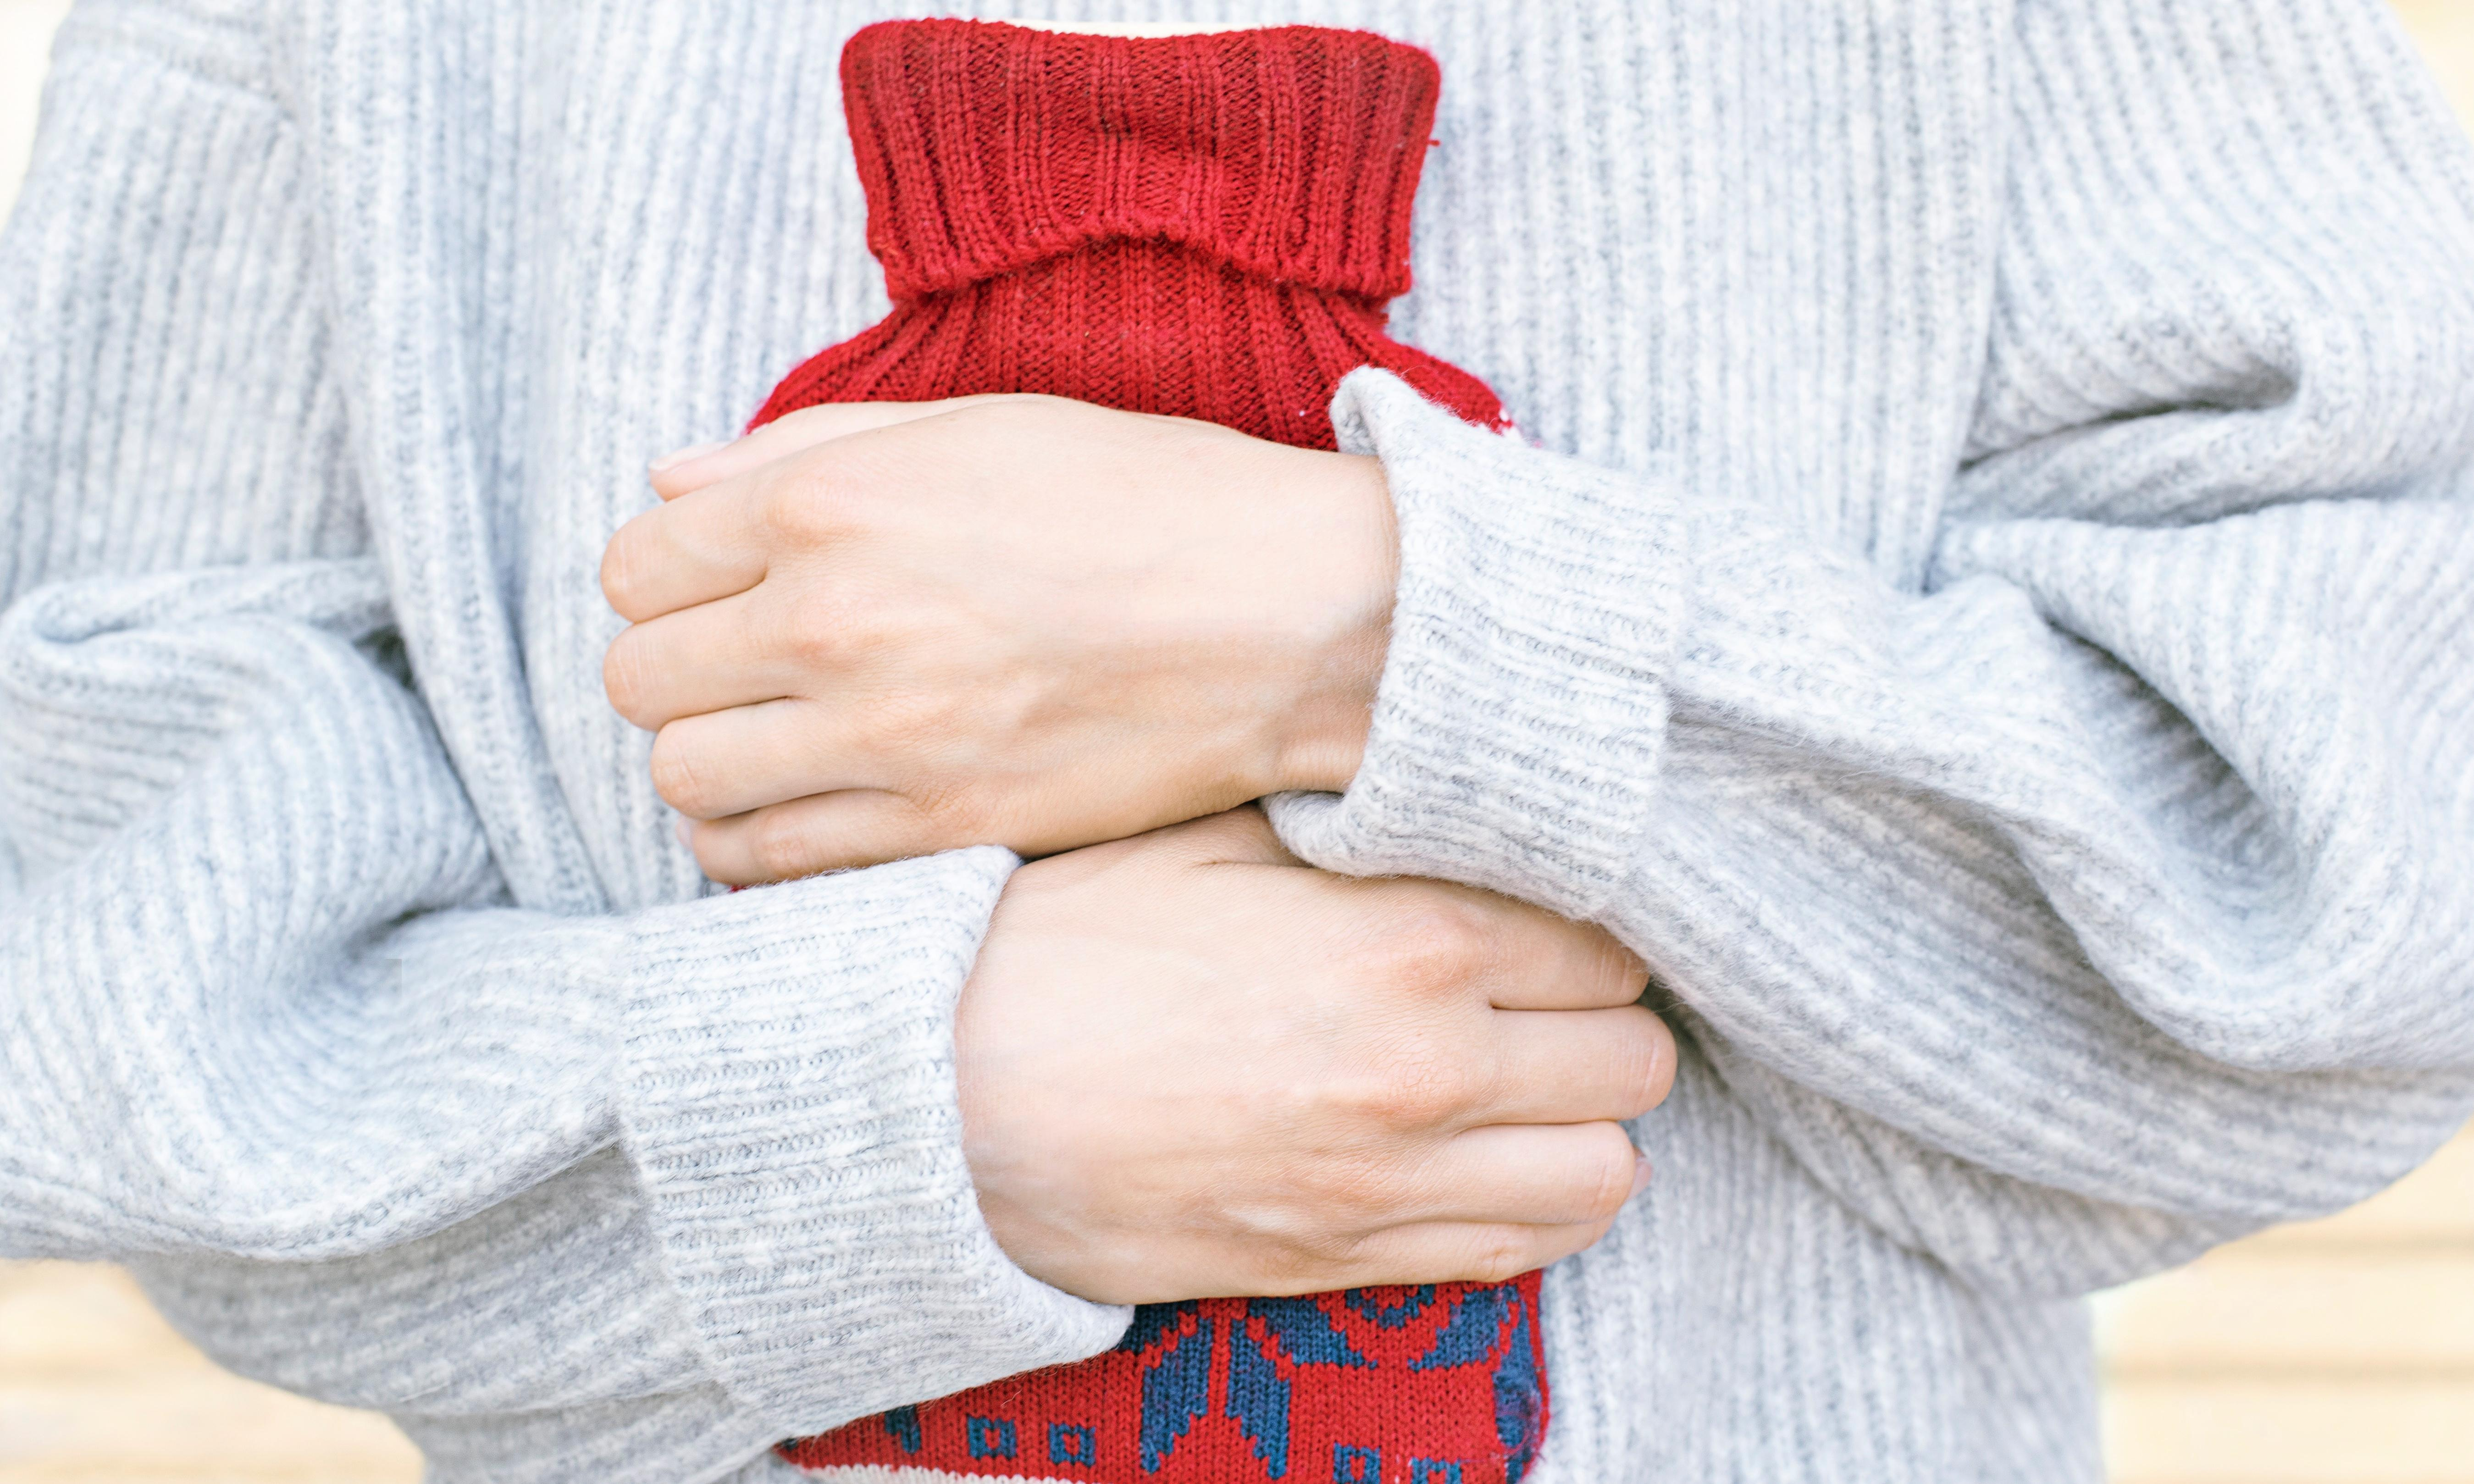 Five ways to cope with menstrual cramps